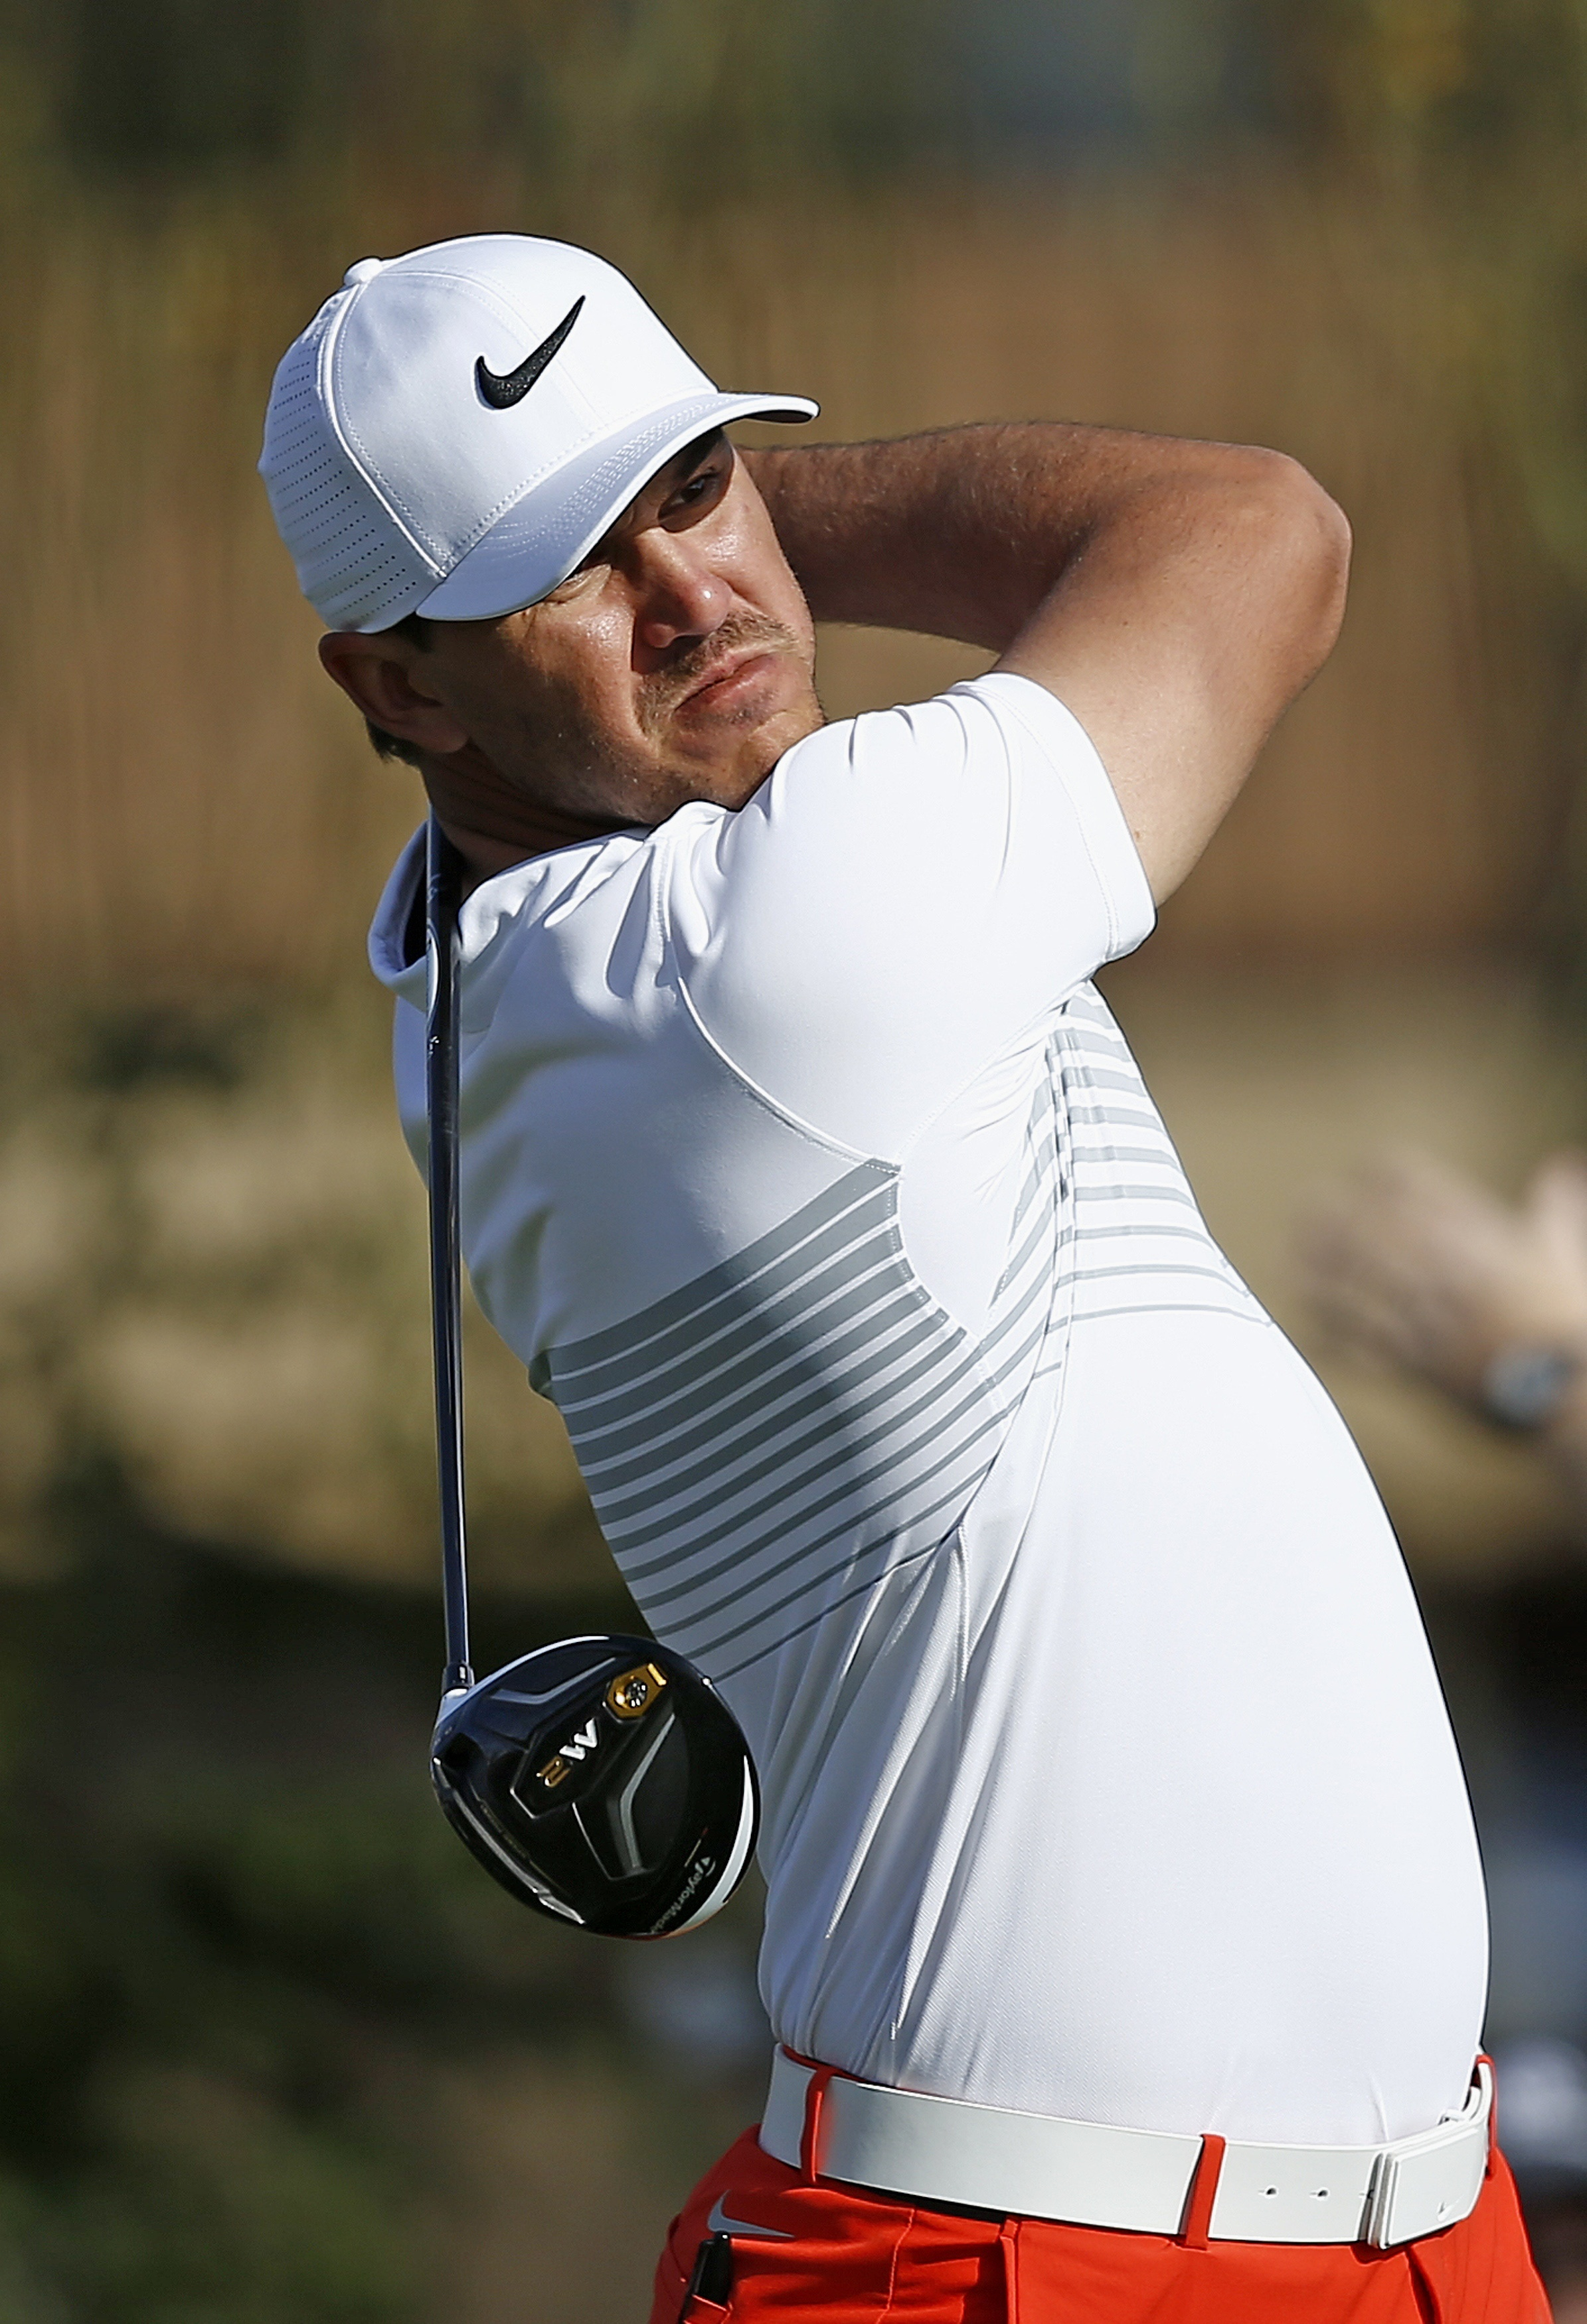 Brooks Koepka hits his tee shot on the second hole during the first round of the Waste Management Phoenix Open golf tournament Thursday, Feb. 2, 2017, in Scottsdale, Ariz. (AP Photo/Ross D. Franklin)